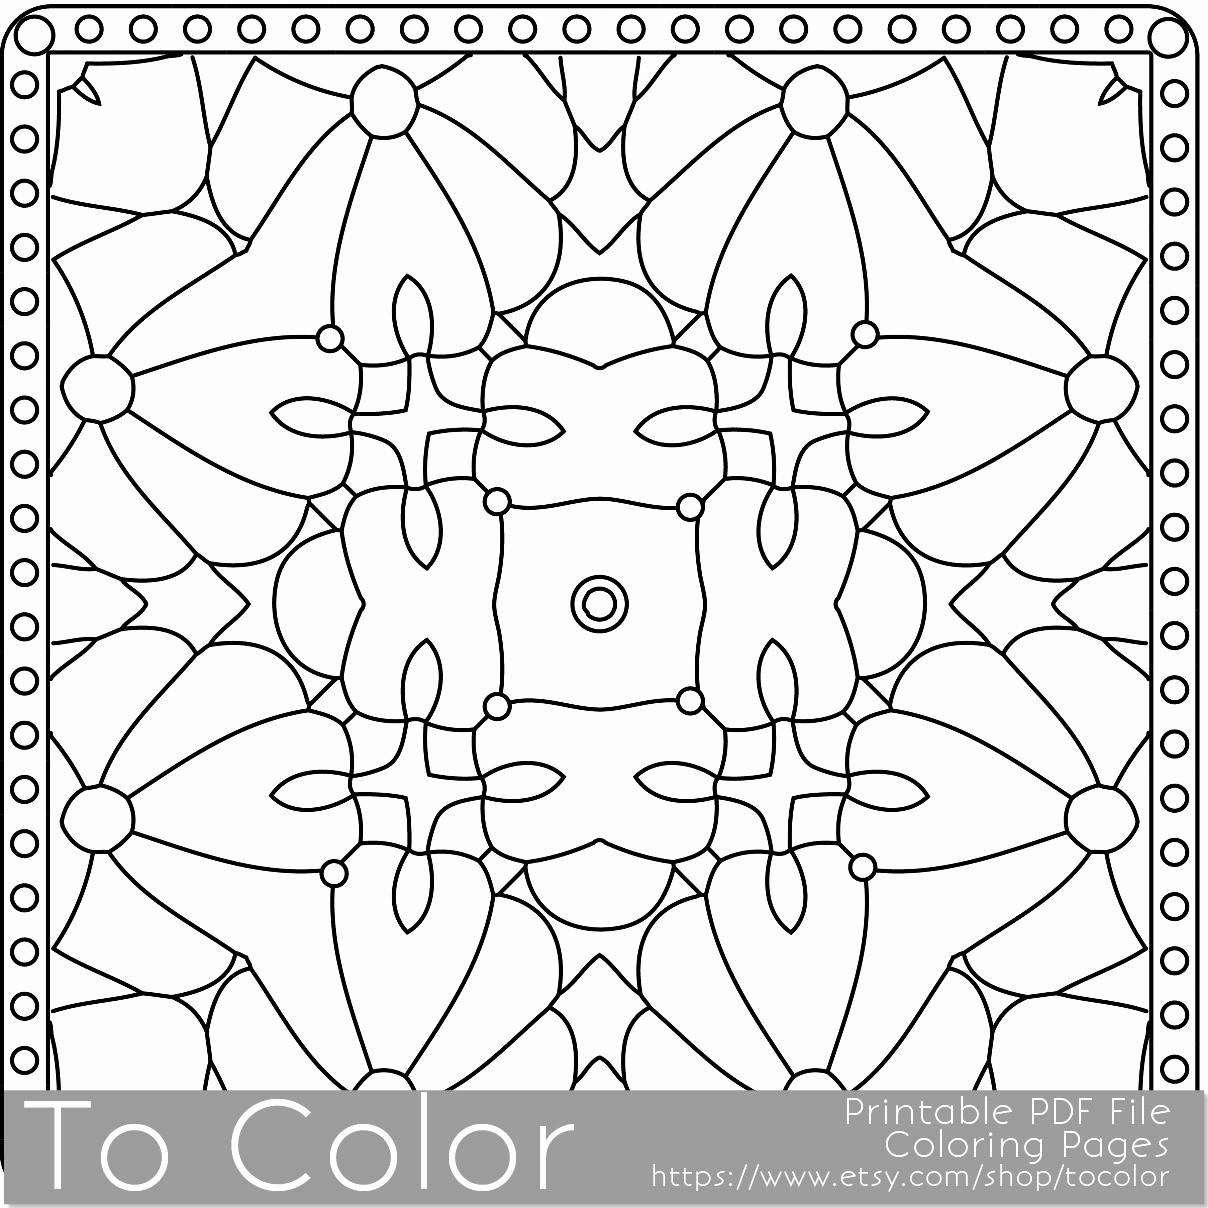 12 Famous Picture Of A Flower Vase to Color 2021 free download picture of a flower vase to color of free printable coloring pages of flower elegant cool vases flower for free printable coloring pages of flower elegant cool vases flower vase coloring pag